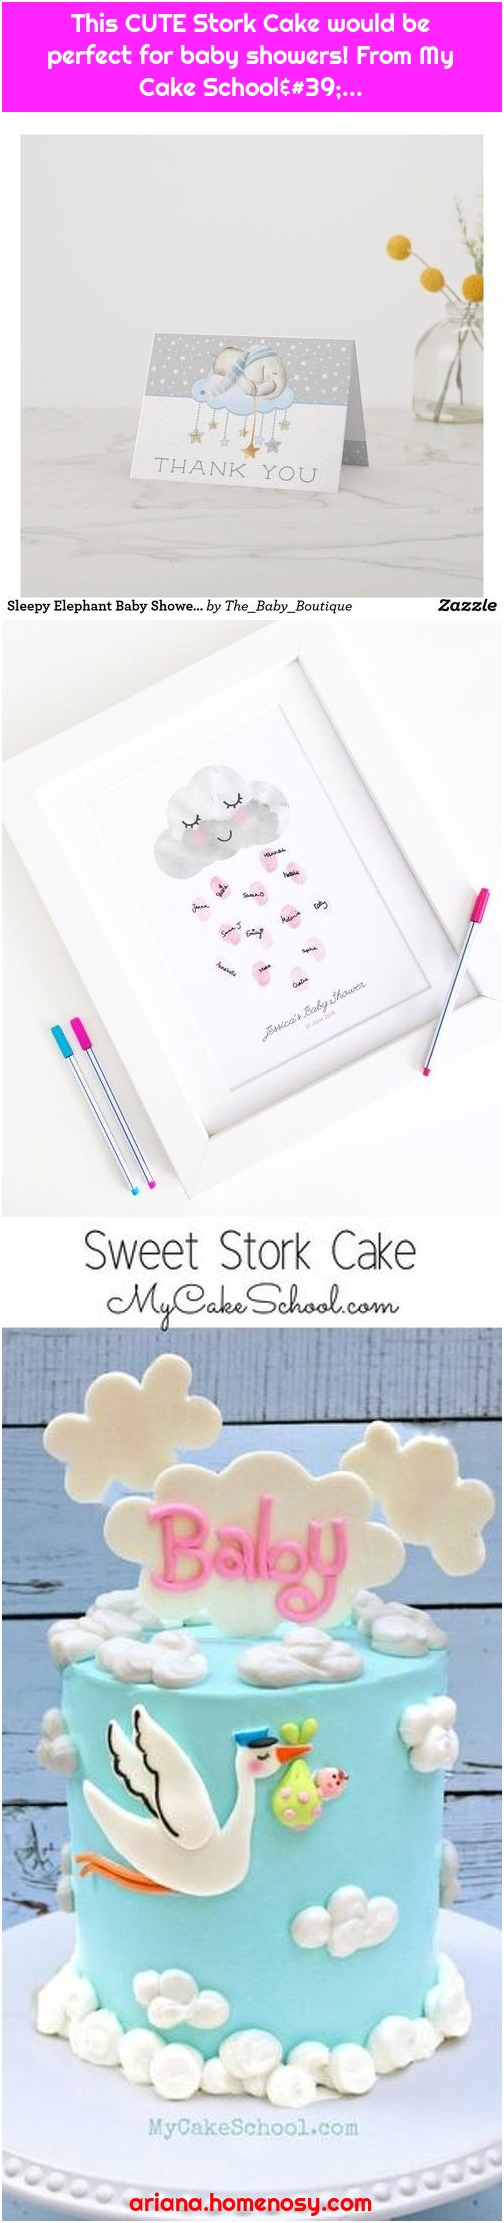 This CUTE Stork Cake would be perfect for baby showers! From My Cake School'...